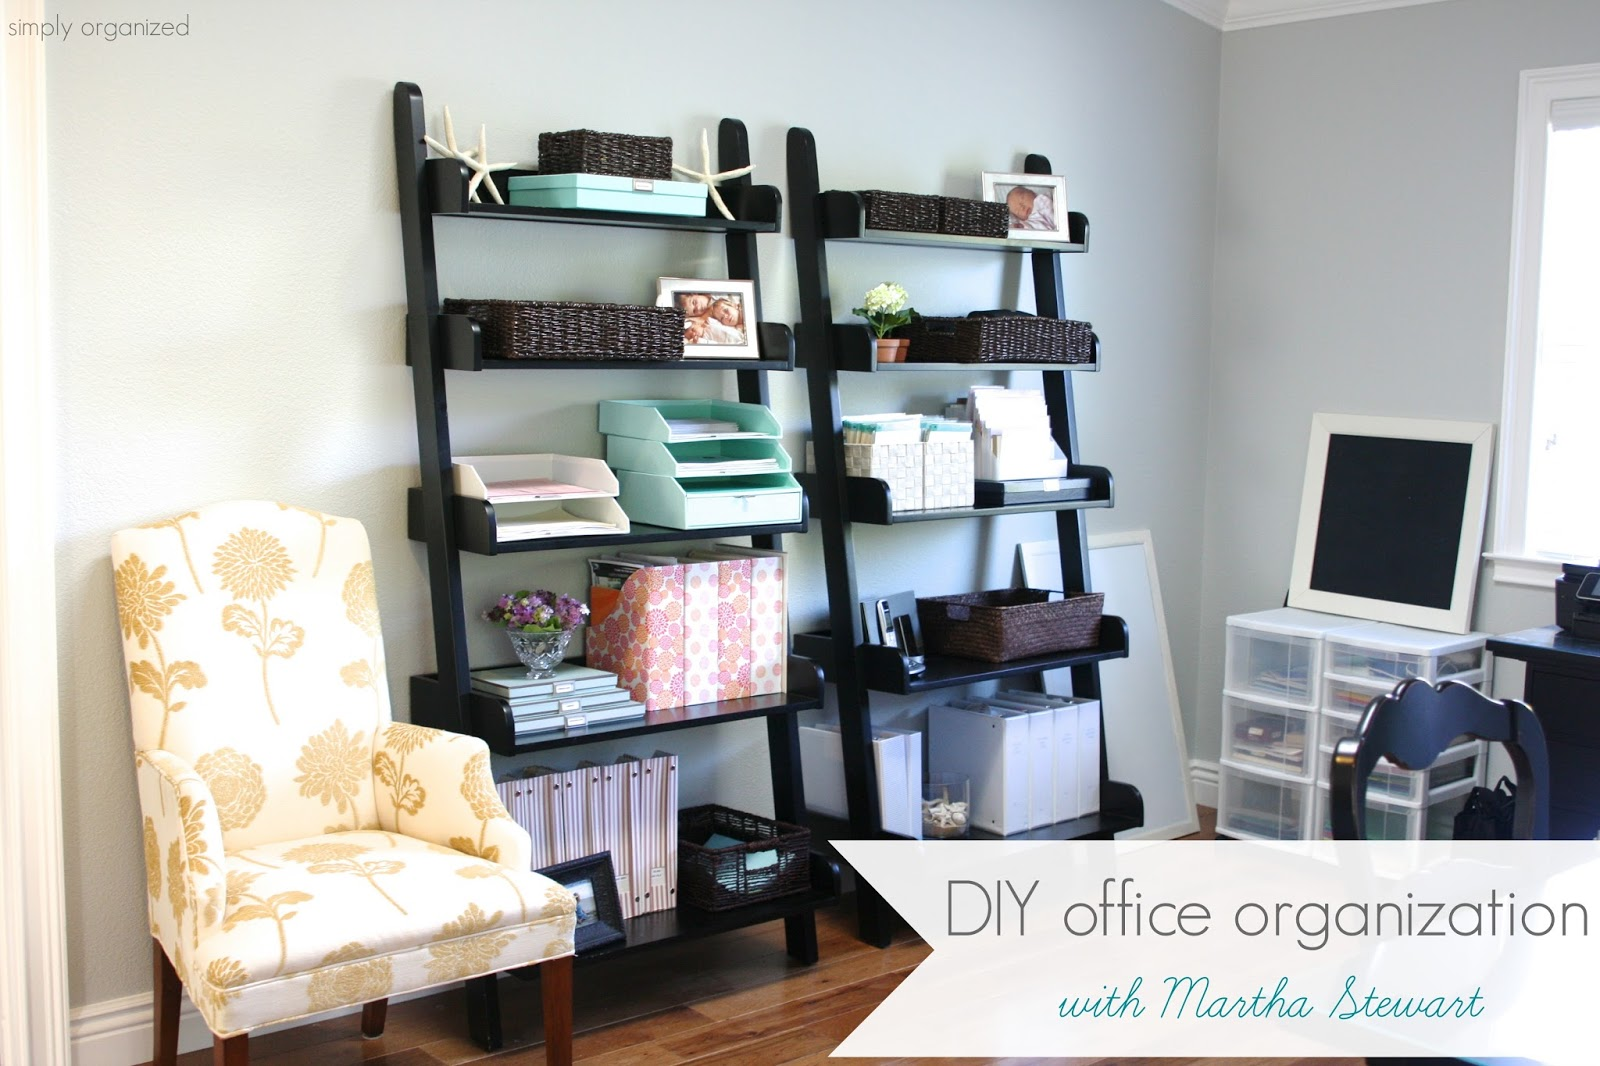 DIY office organization - with Martha Stewart - simply ...